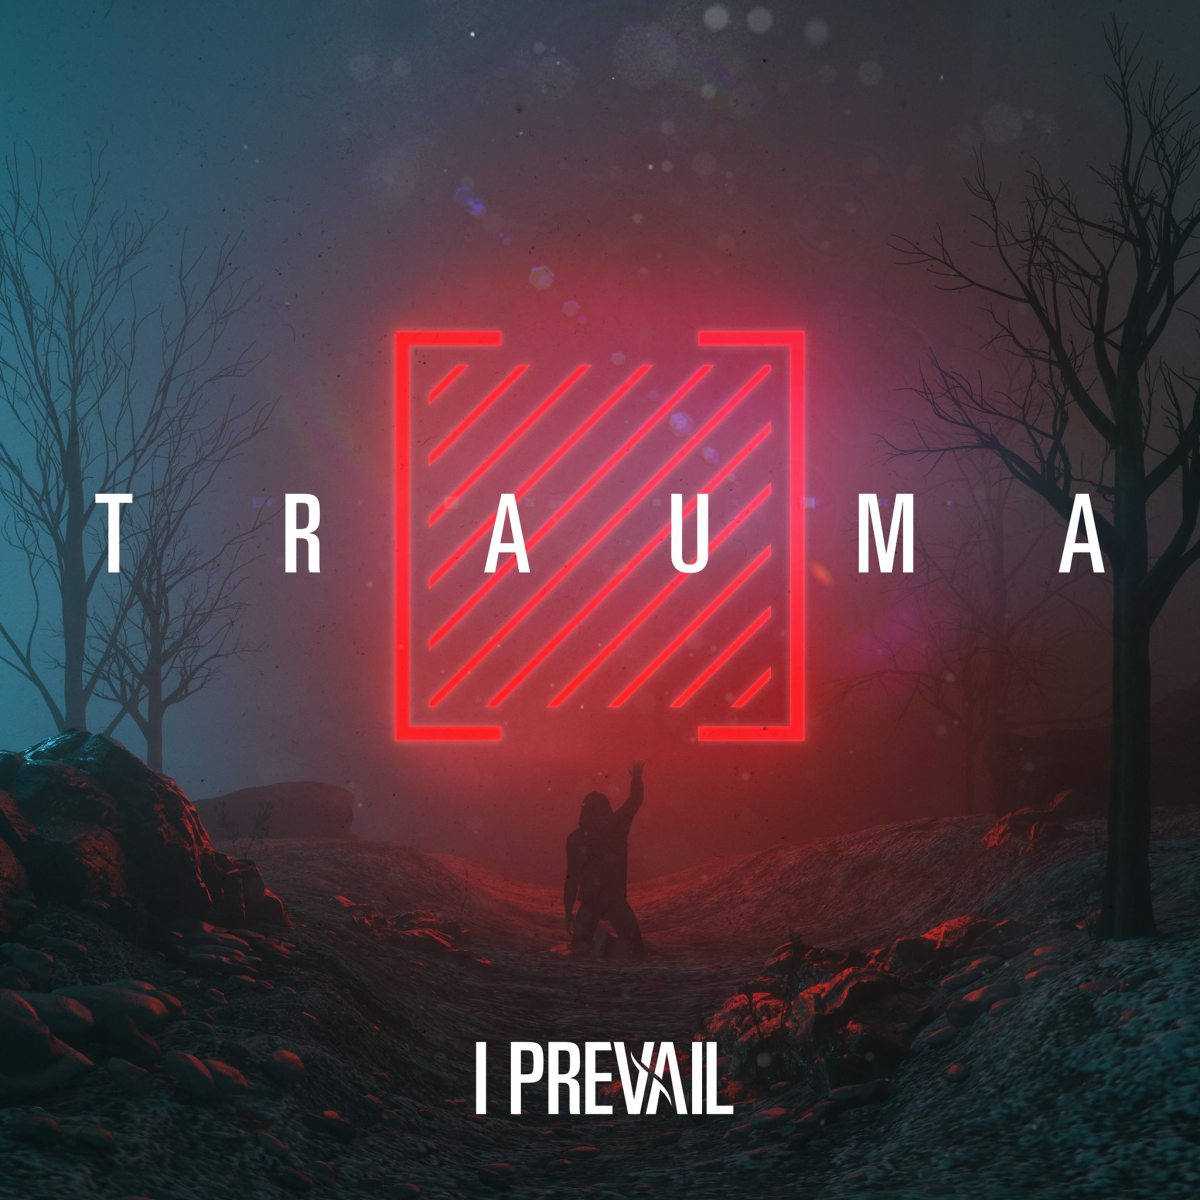 I Prevail announced their new album Trauma and teased the first single is coming...